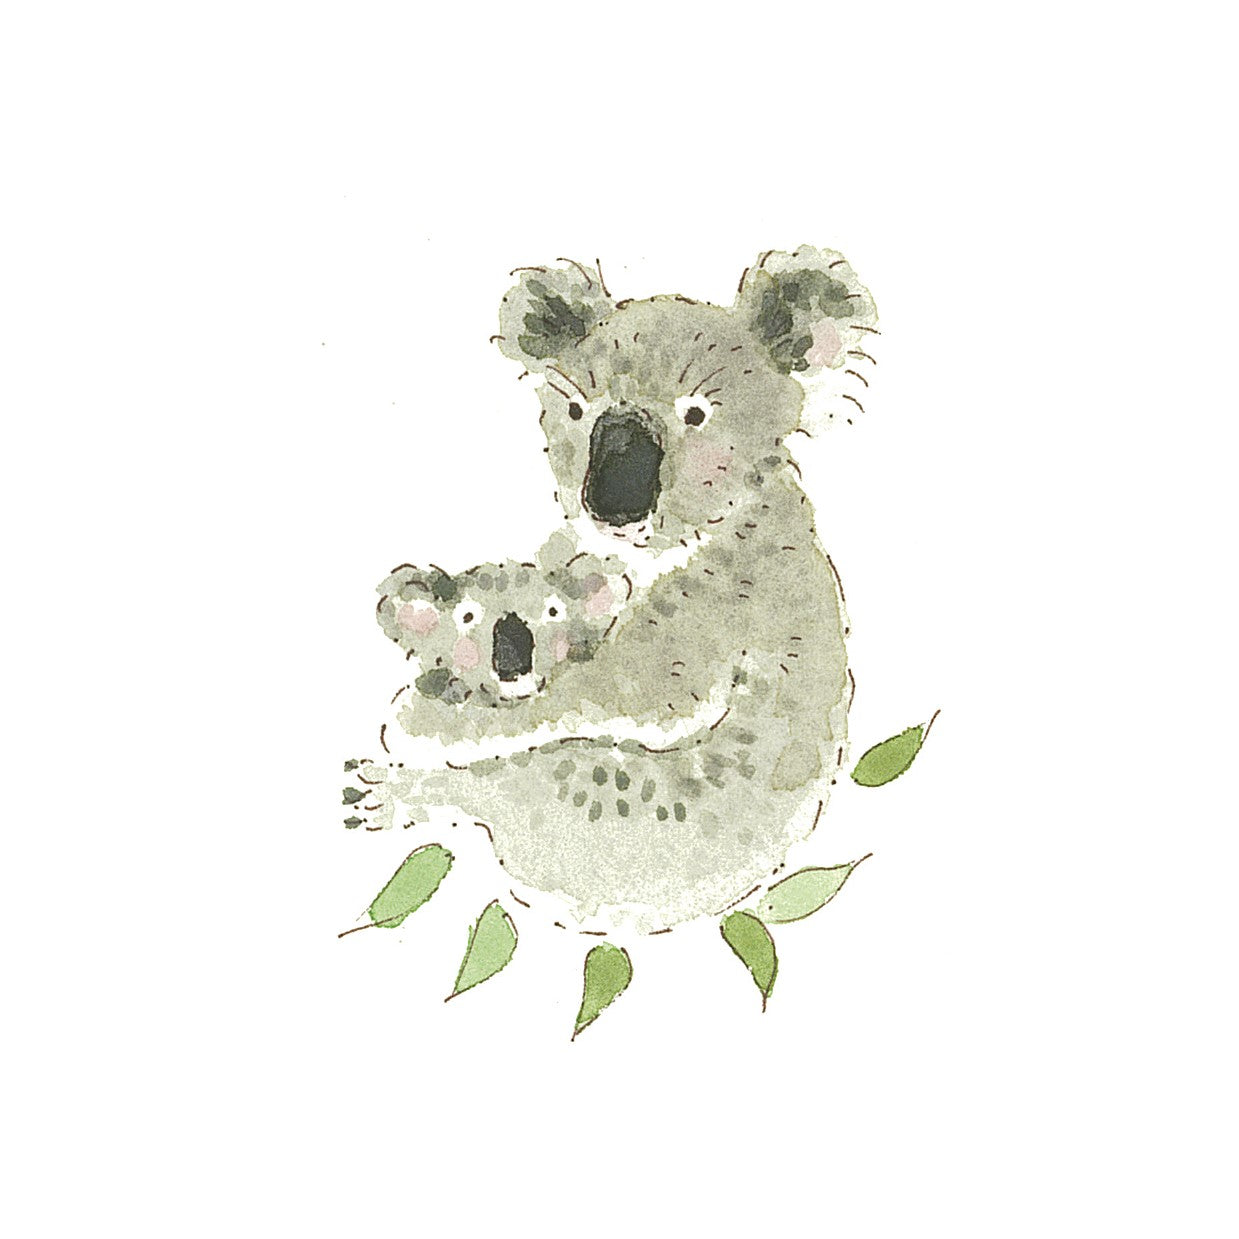 Sophie's Koala Cards raise money for Australian wildlife charity